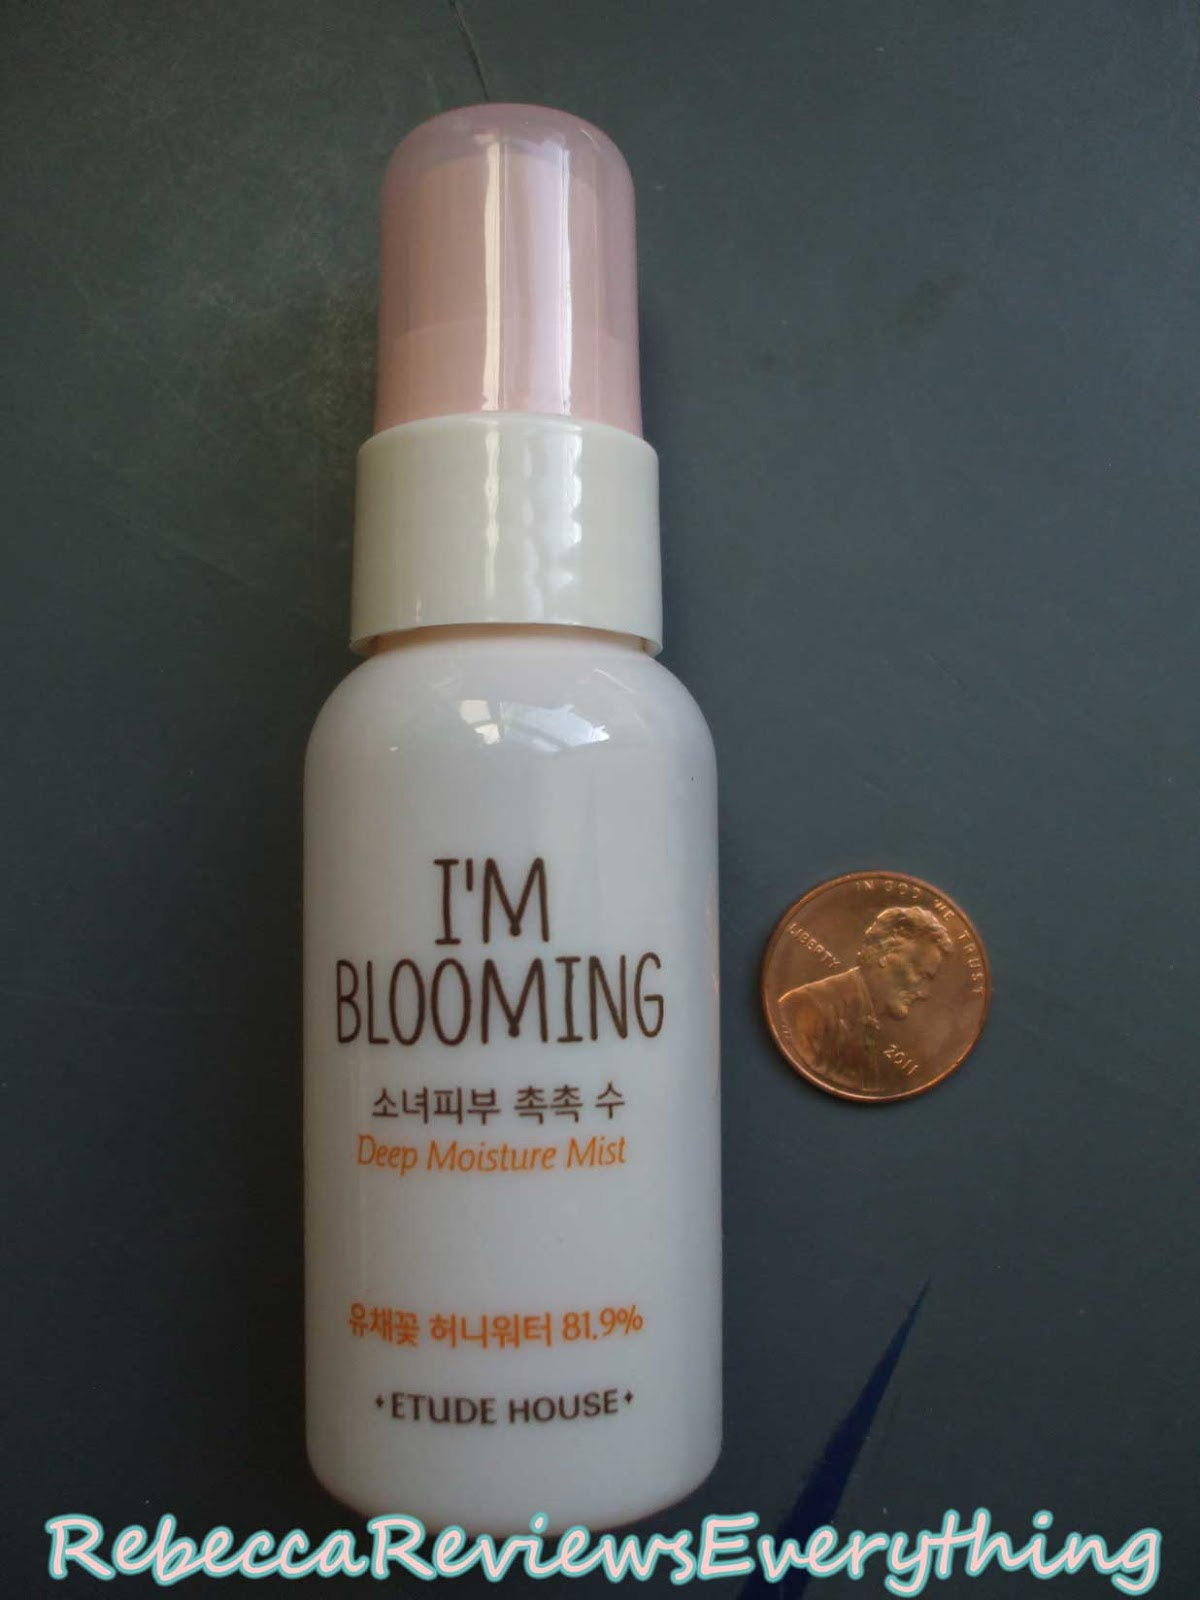 Etude House I'm Blooming pocket mist mini sample